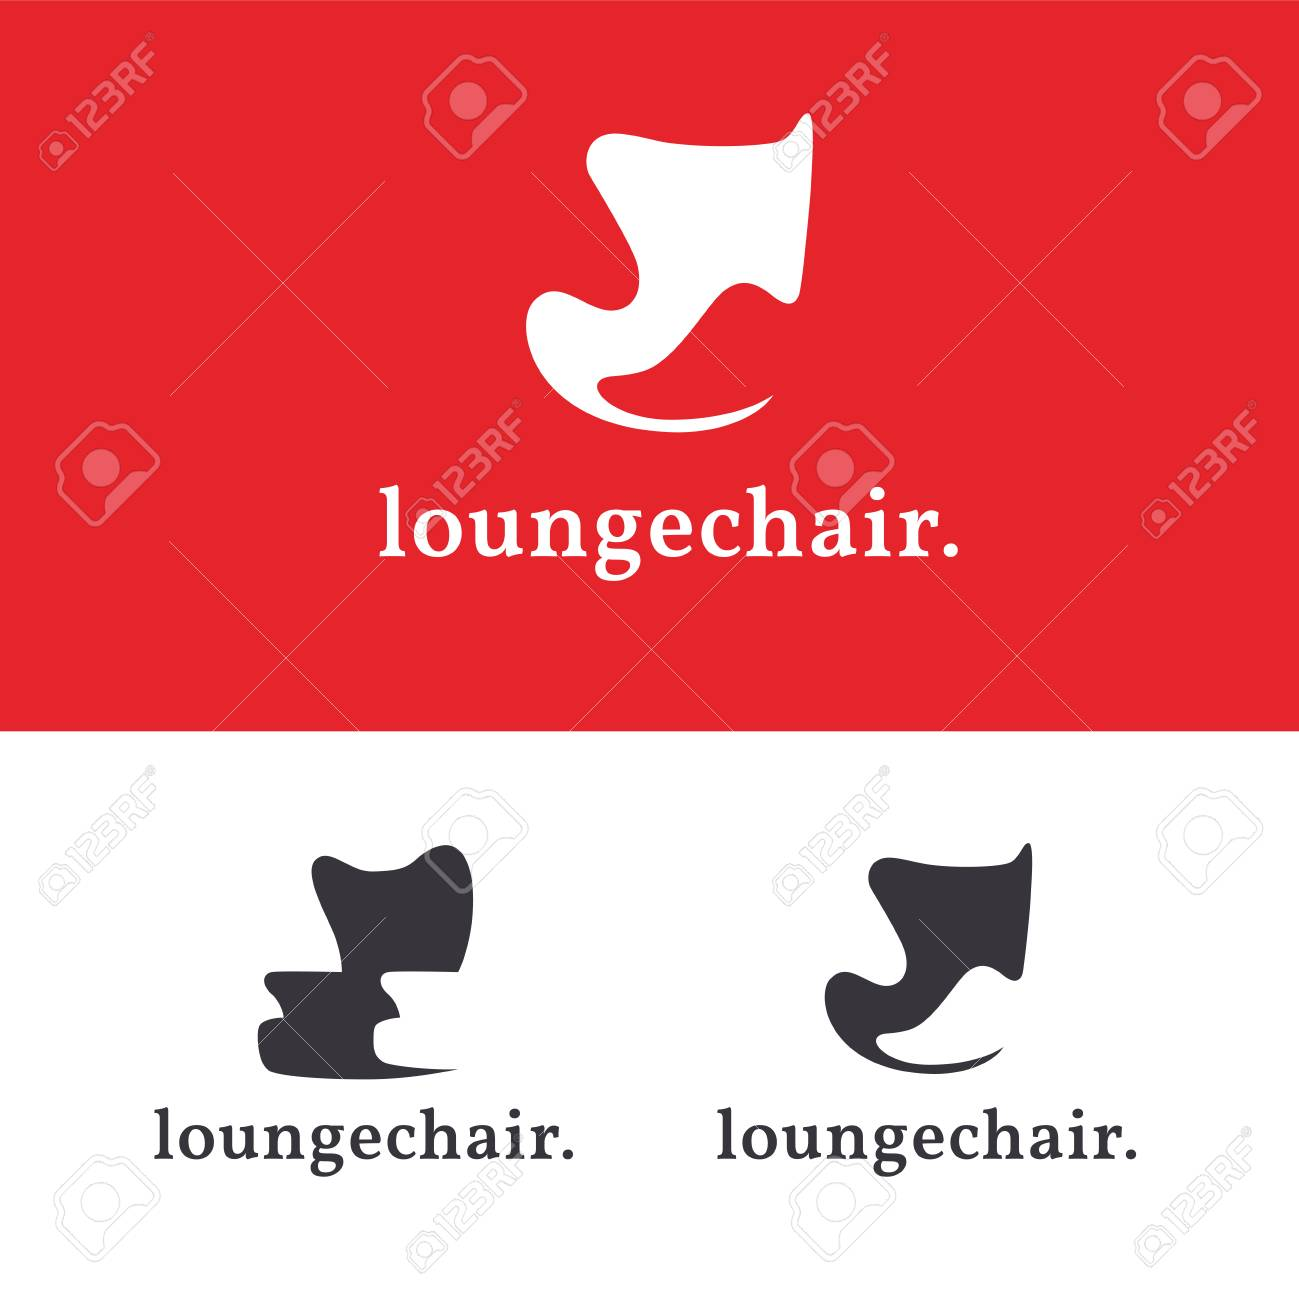 modern armchair design swoop arm chair set of furniture logo templates concepts lounge iconic sign